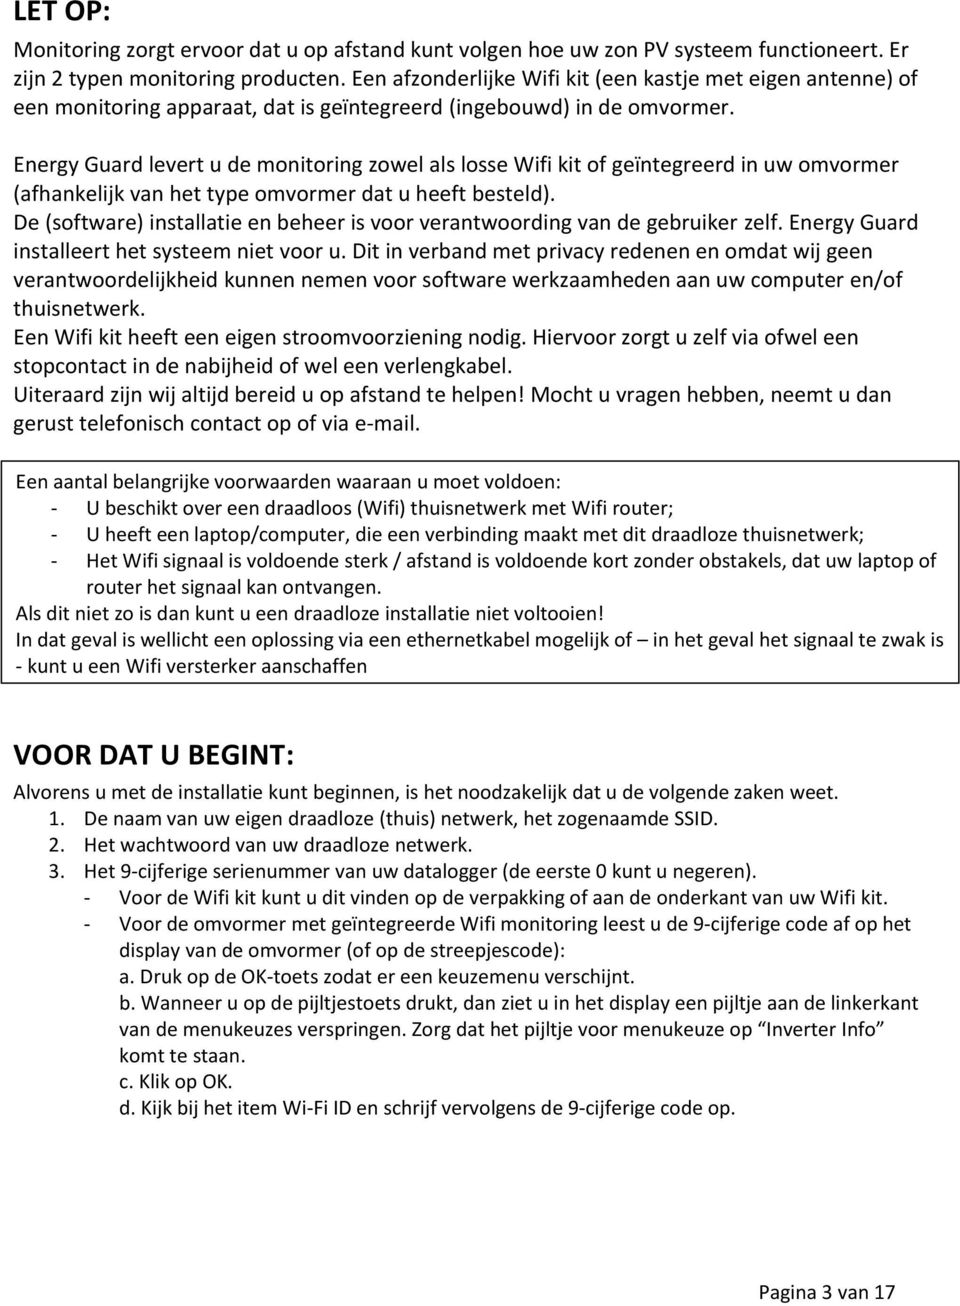 Energy Guard levert u de monitoring zowel als losse Wifi kit of geïntegreerd in uw omvormer (afhankelijk van het type omvormer dat u heeft besteld).